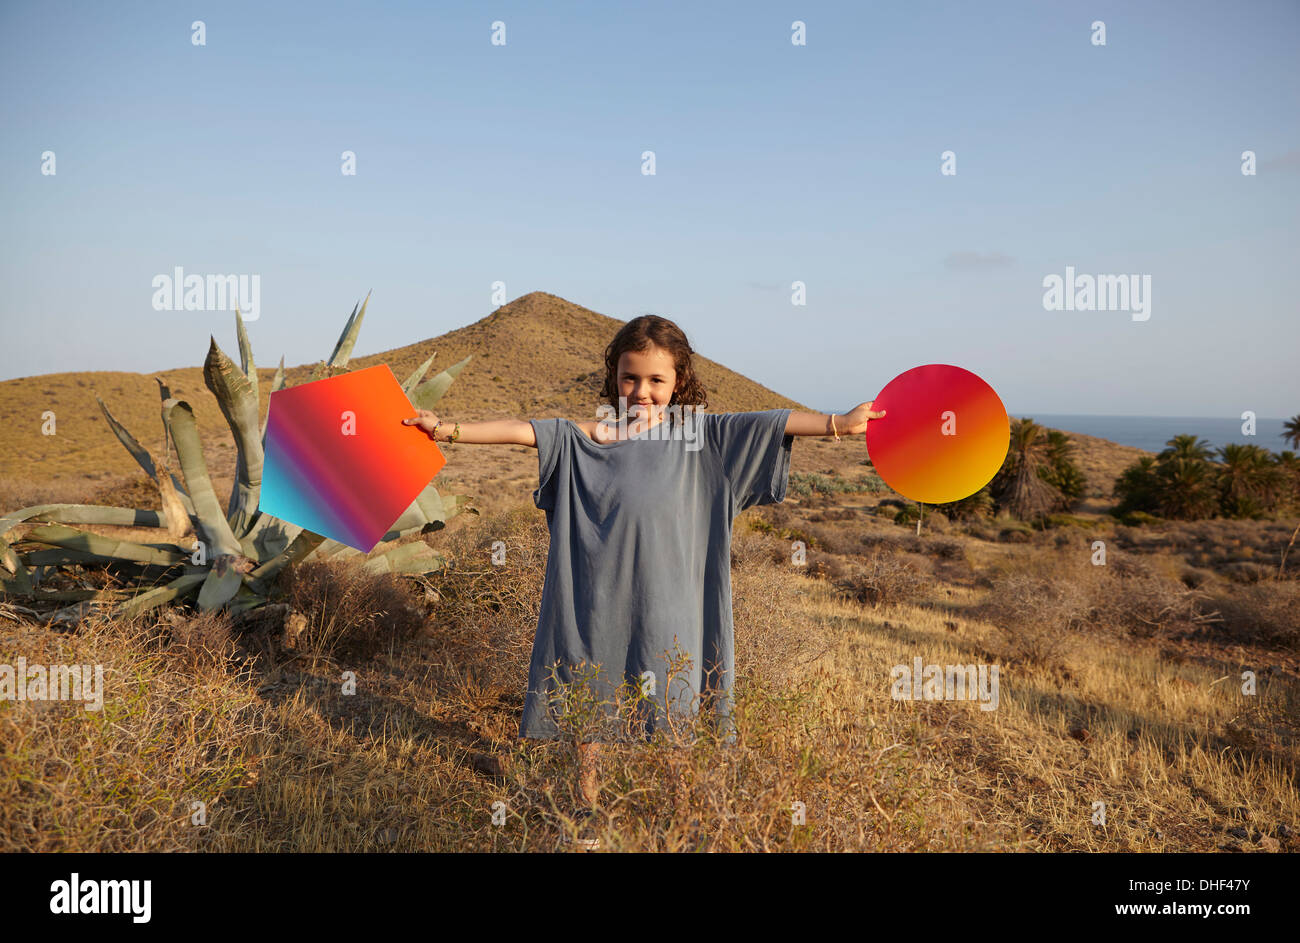 Girl holding bright shapes in desert, Cabo de Gata, Almeria, Spain - Stock Image